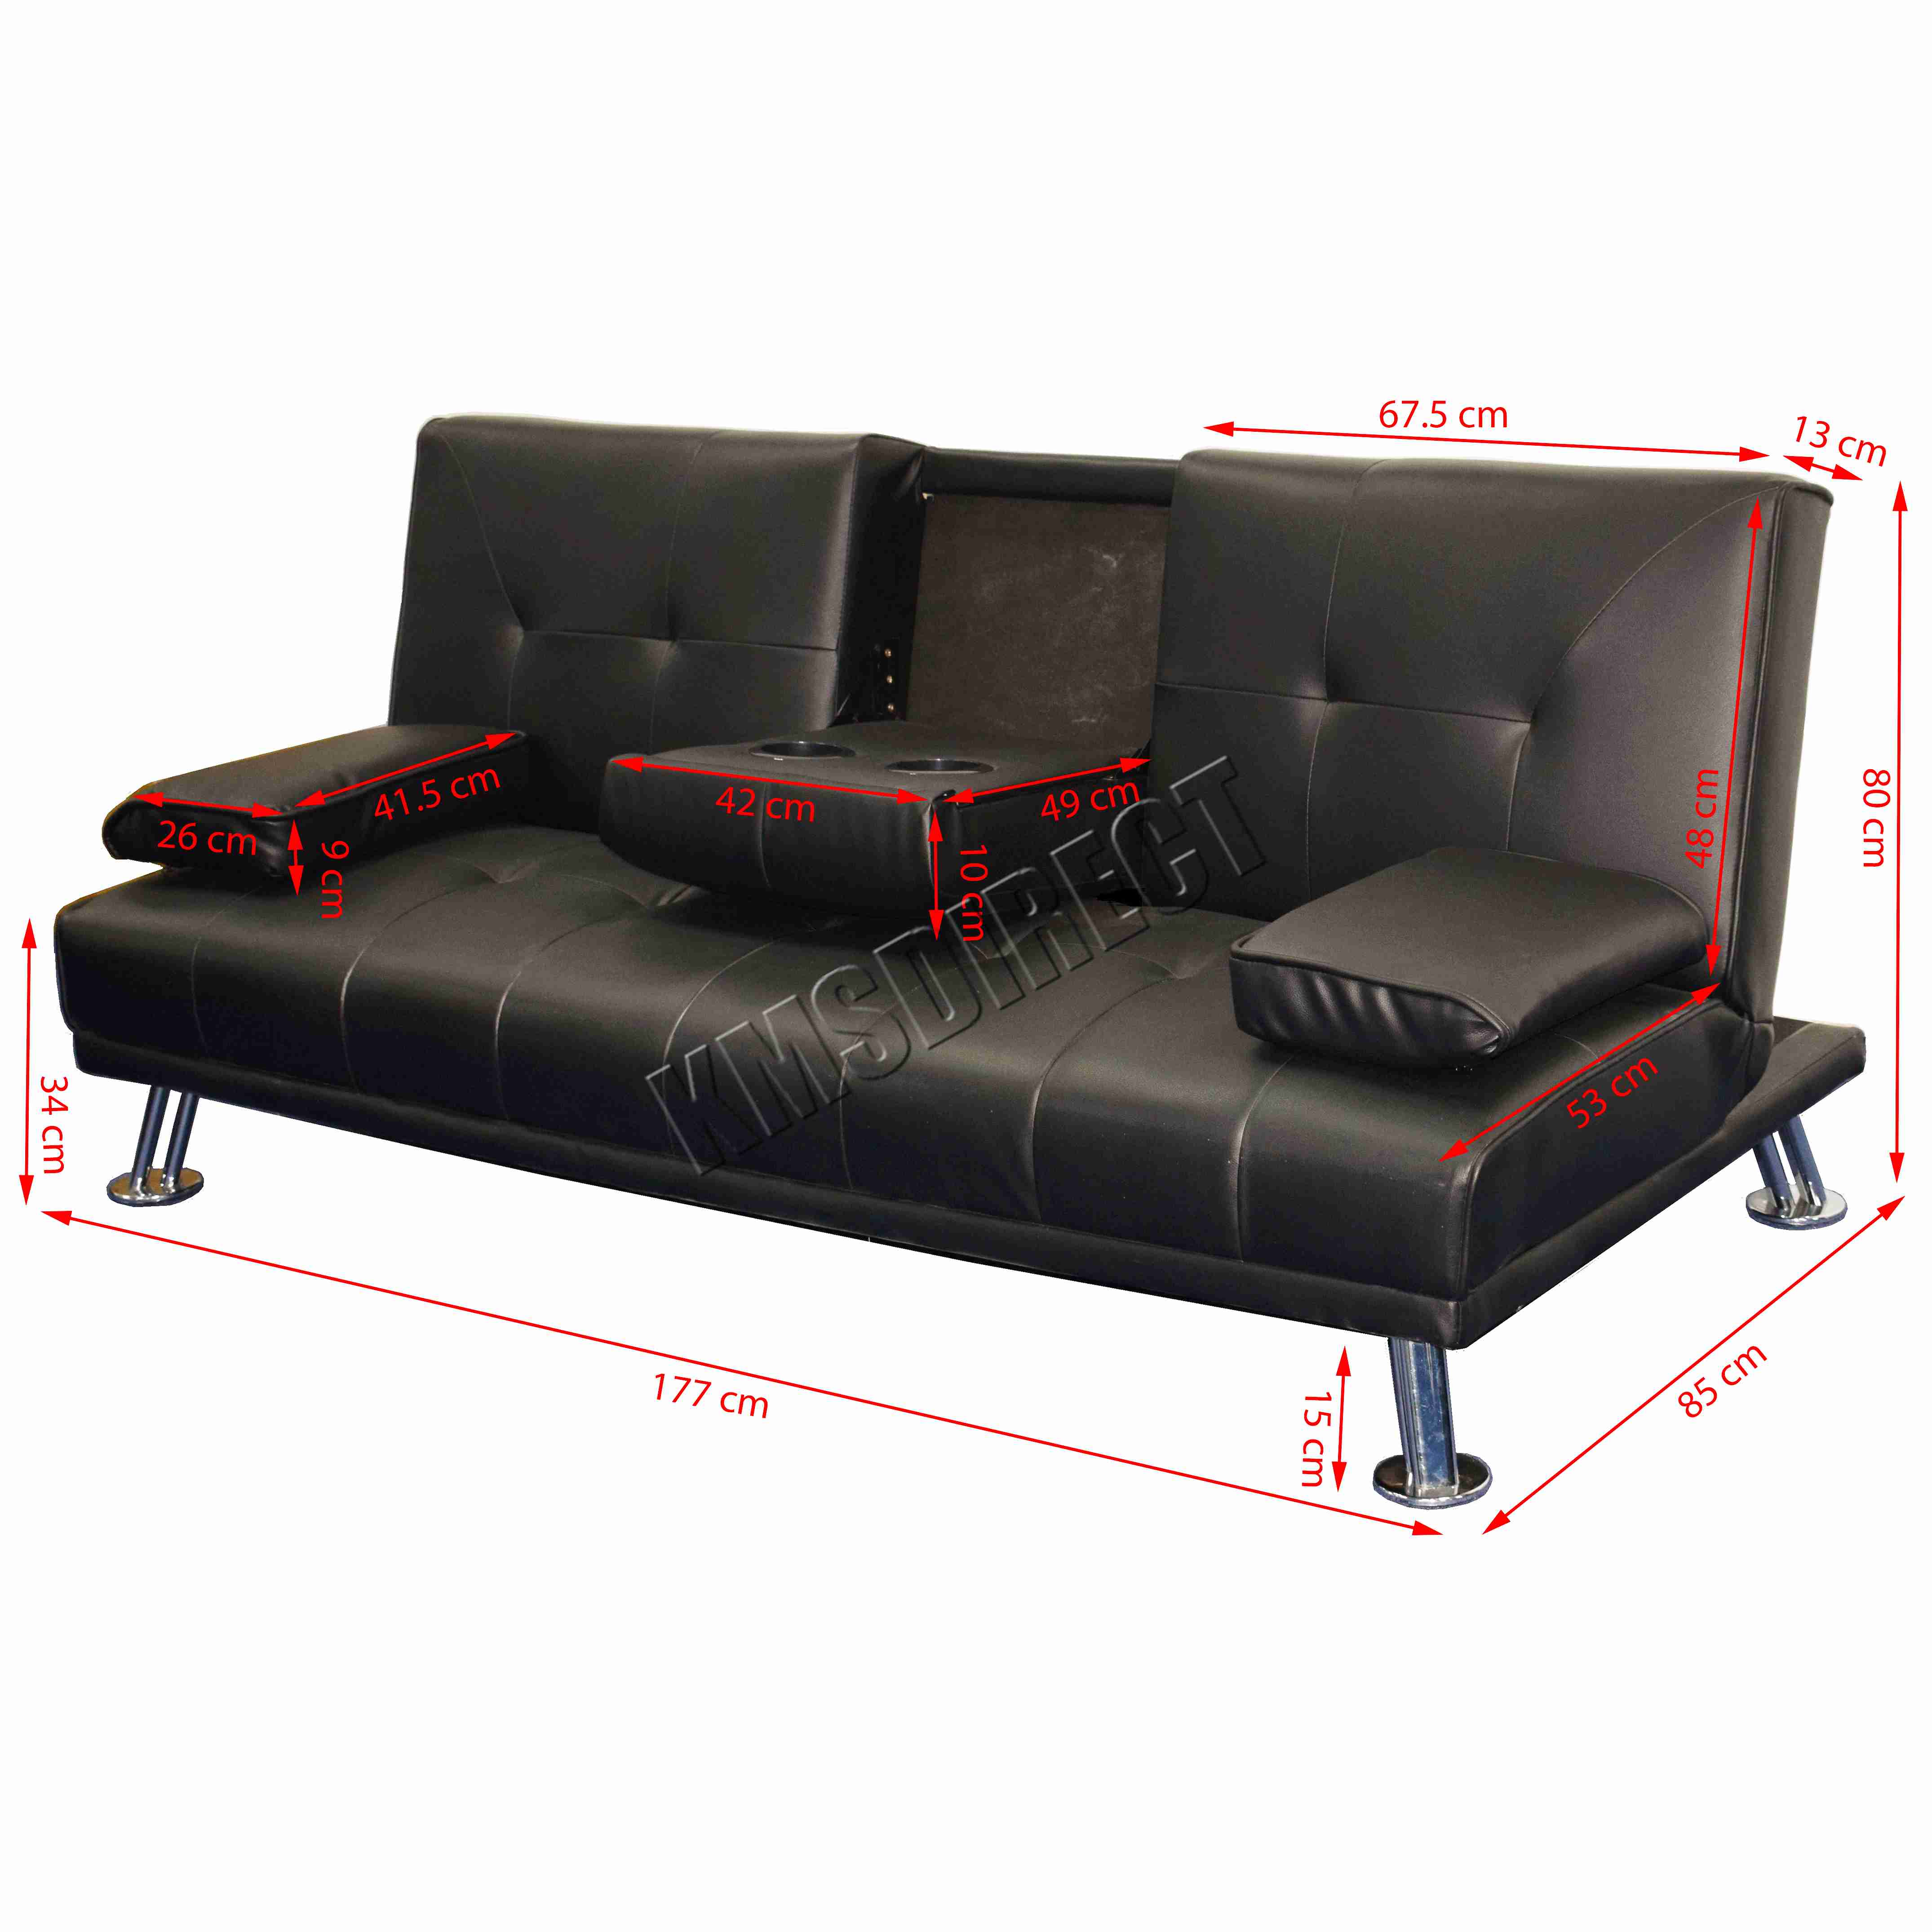 Faux Leather Manhattan Sofa Bed recliner 3 Seater Modern ...